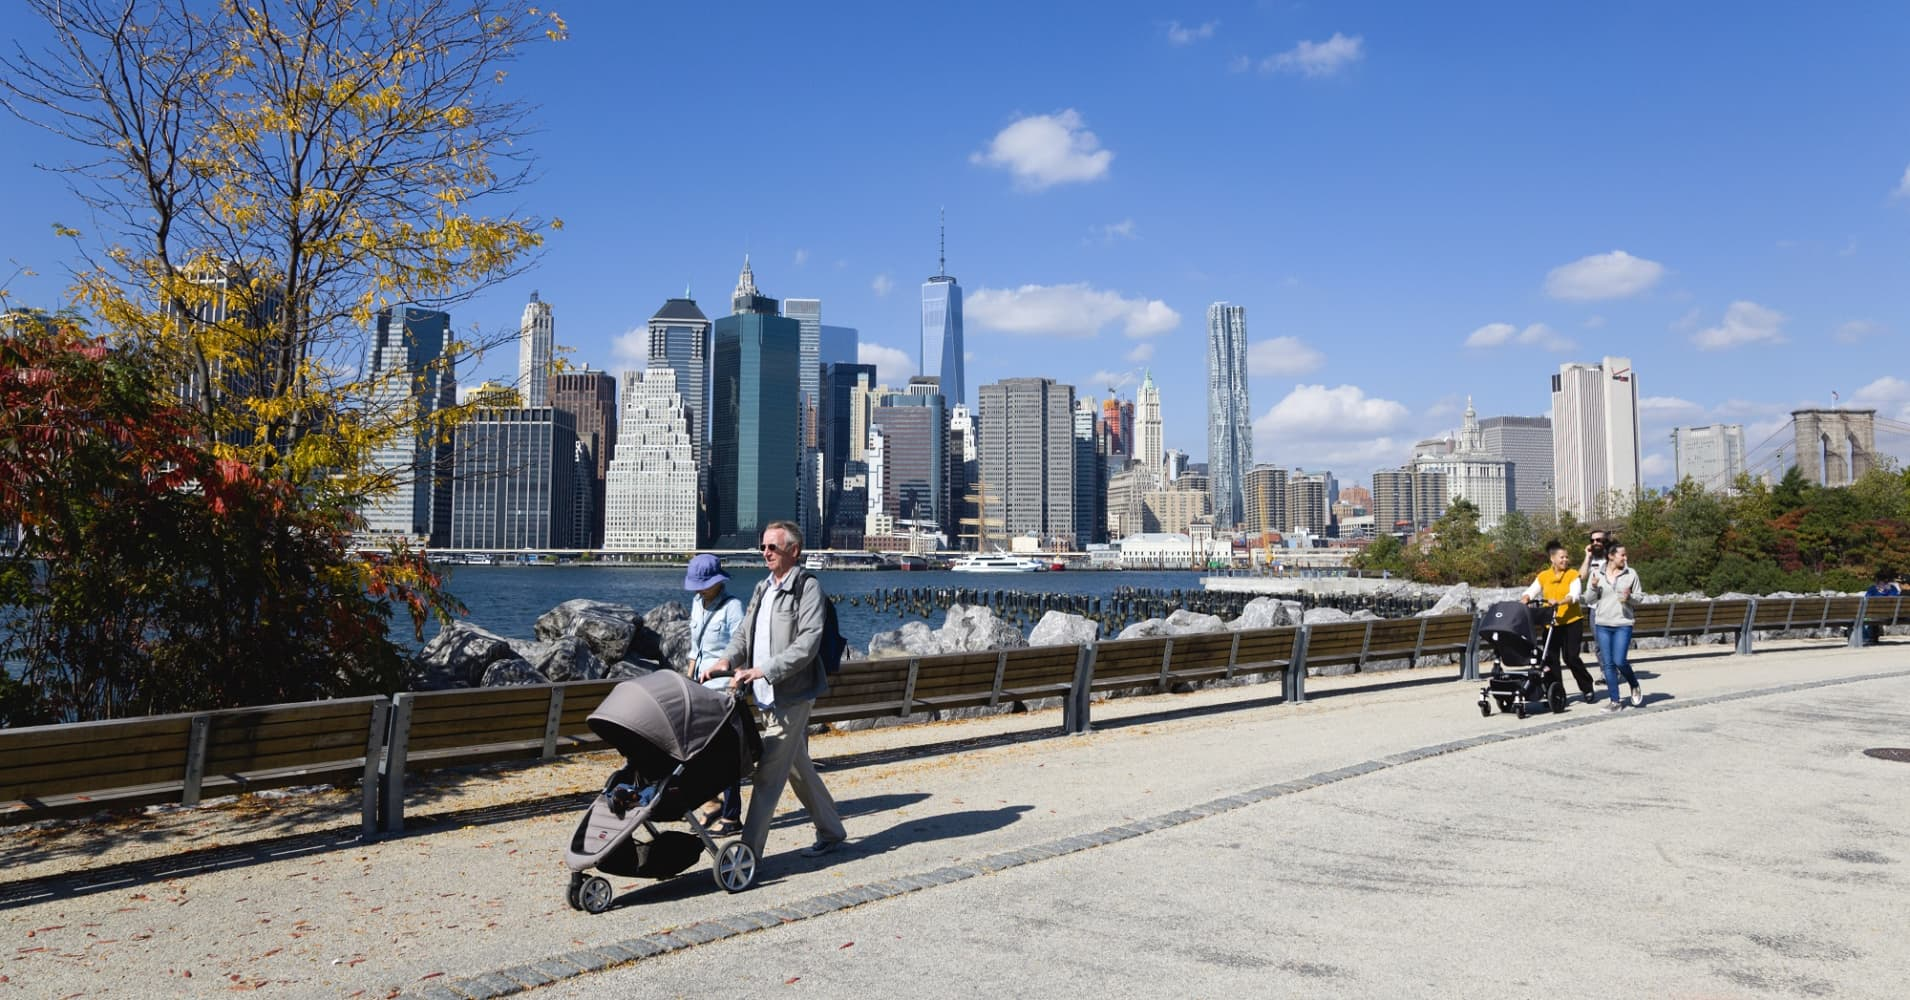 USA, New York, Brooklyn Bridge Park, couple in autumn pushing prams along a path between Pier 1 and Pier 2 with the Lower Manhattan skyscraper skyline and the East River beyond.